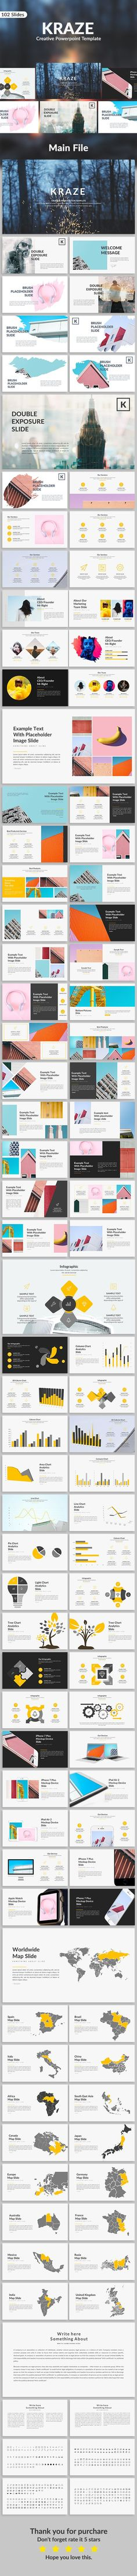 Kraze - Creative Powerpoint Template - 102 Unique Slides